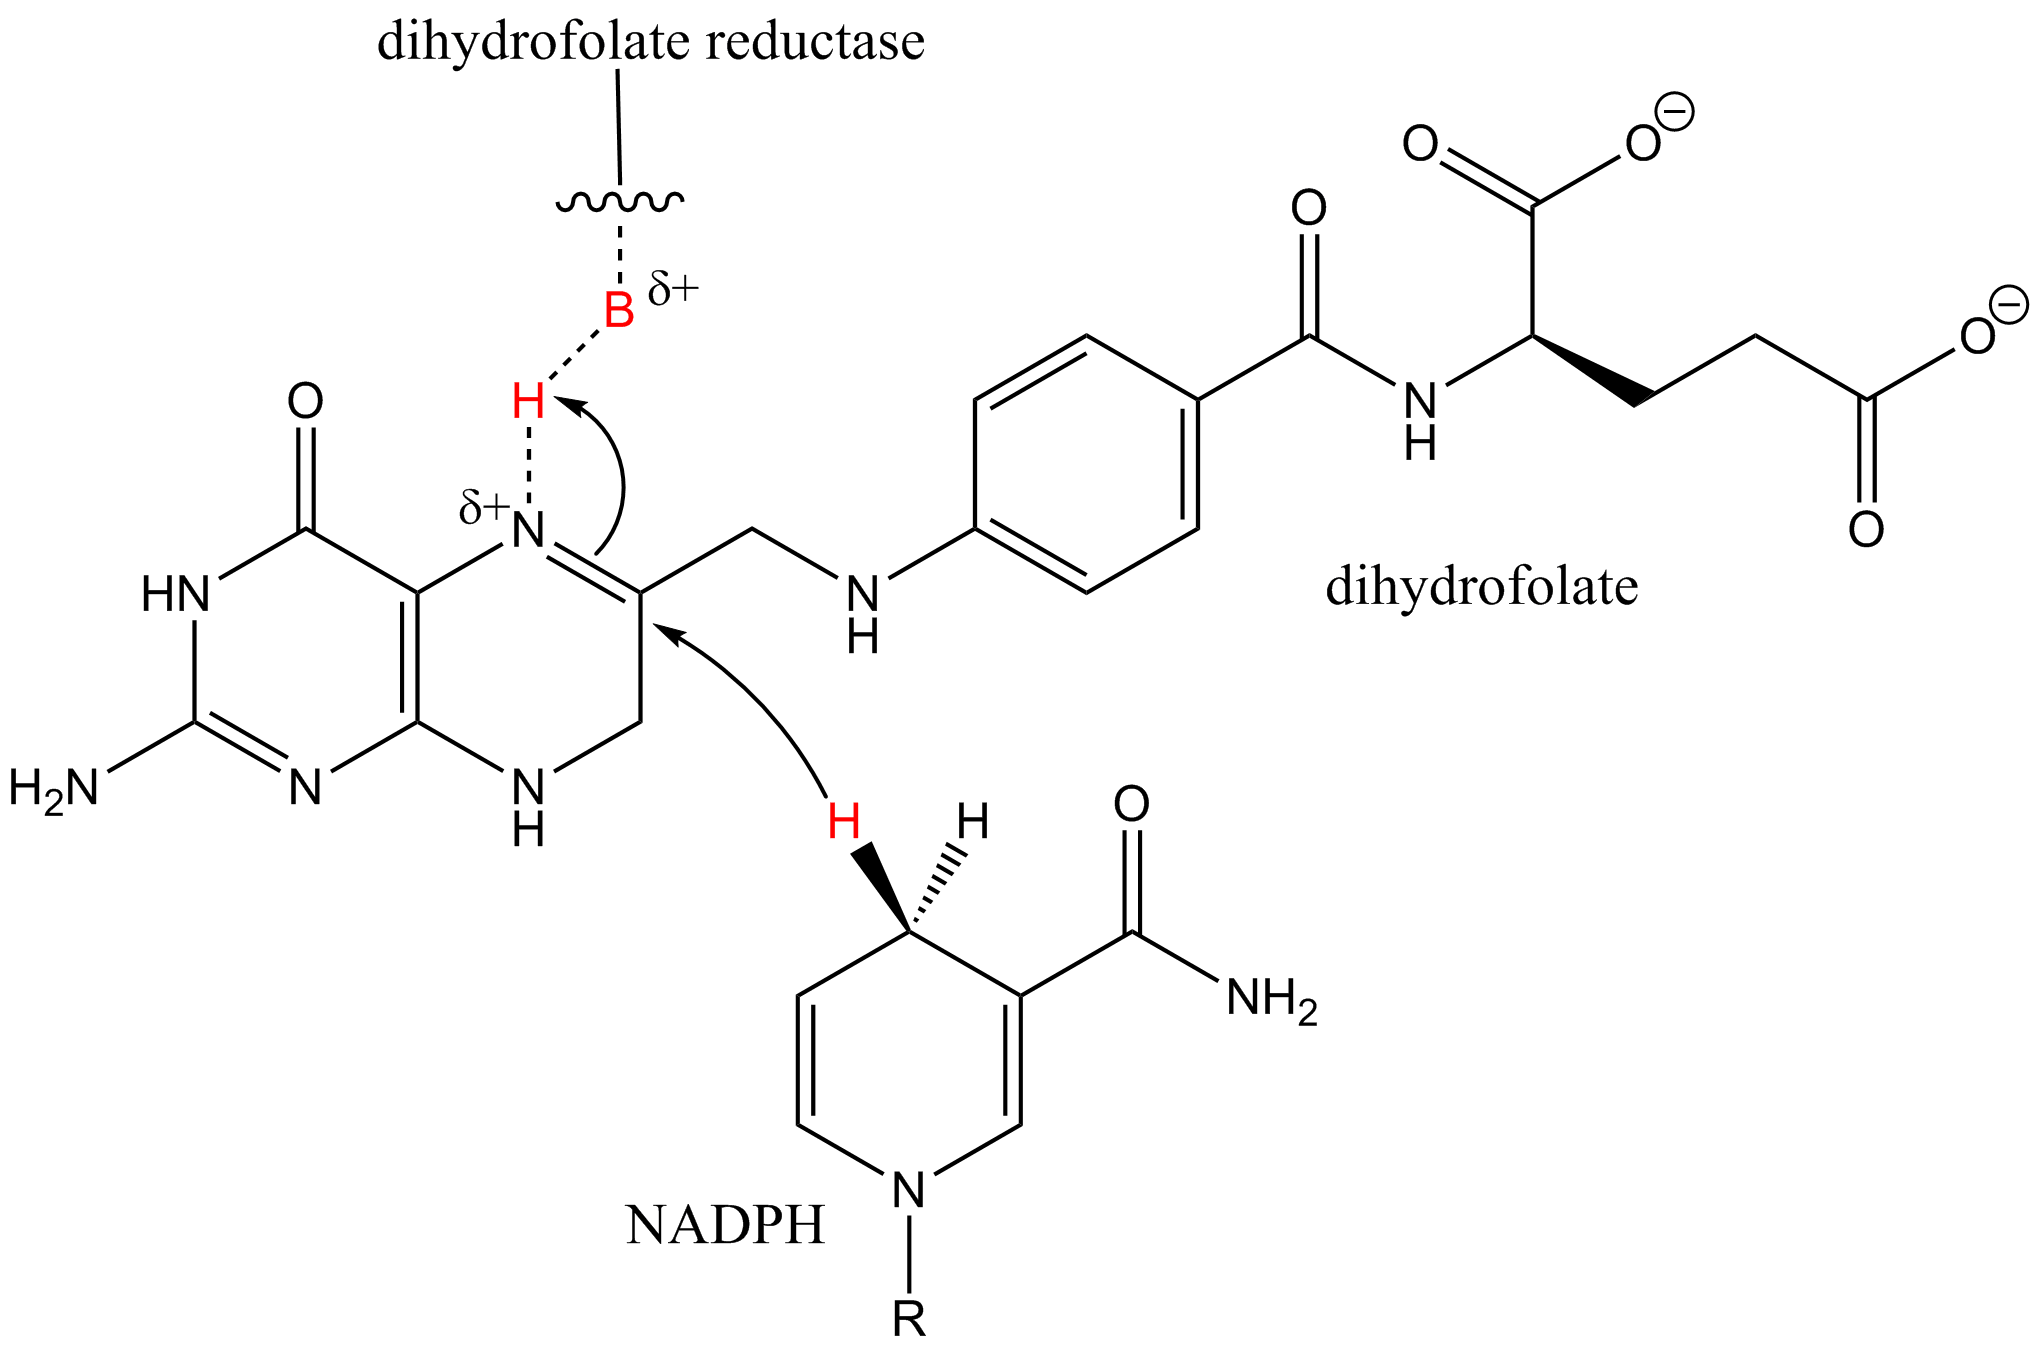 File Synergistic catalysis with dihydrofolate reducase and NADP 2B on 676